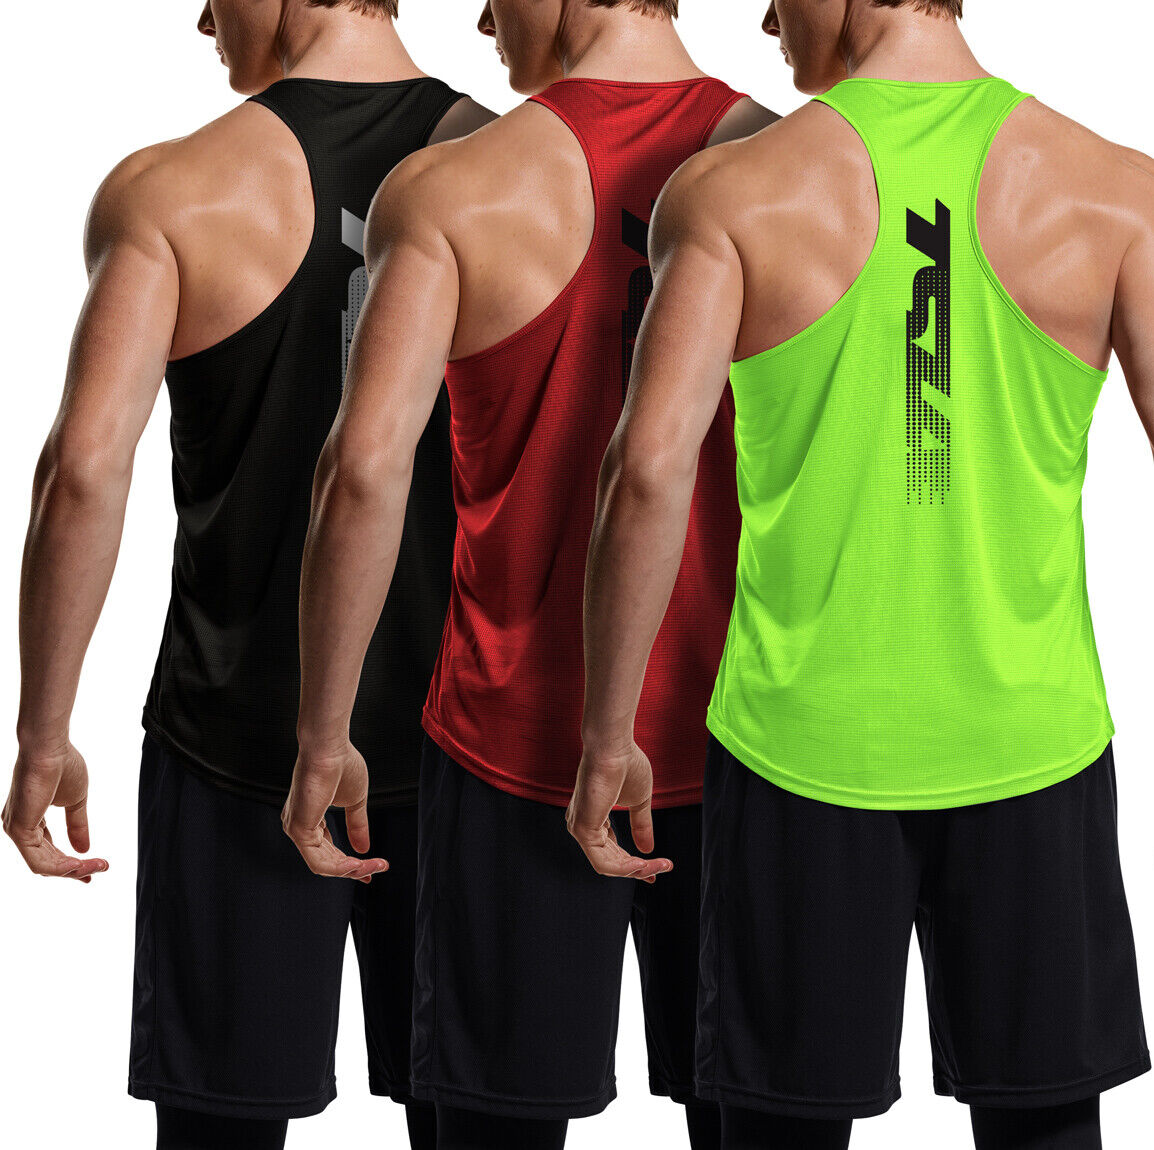 TSLA 3 Pack Men's Y-Back Muscle Workout Tank Tops, Athletic Gym Tank Top